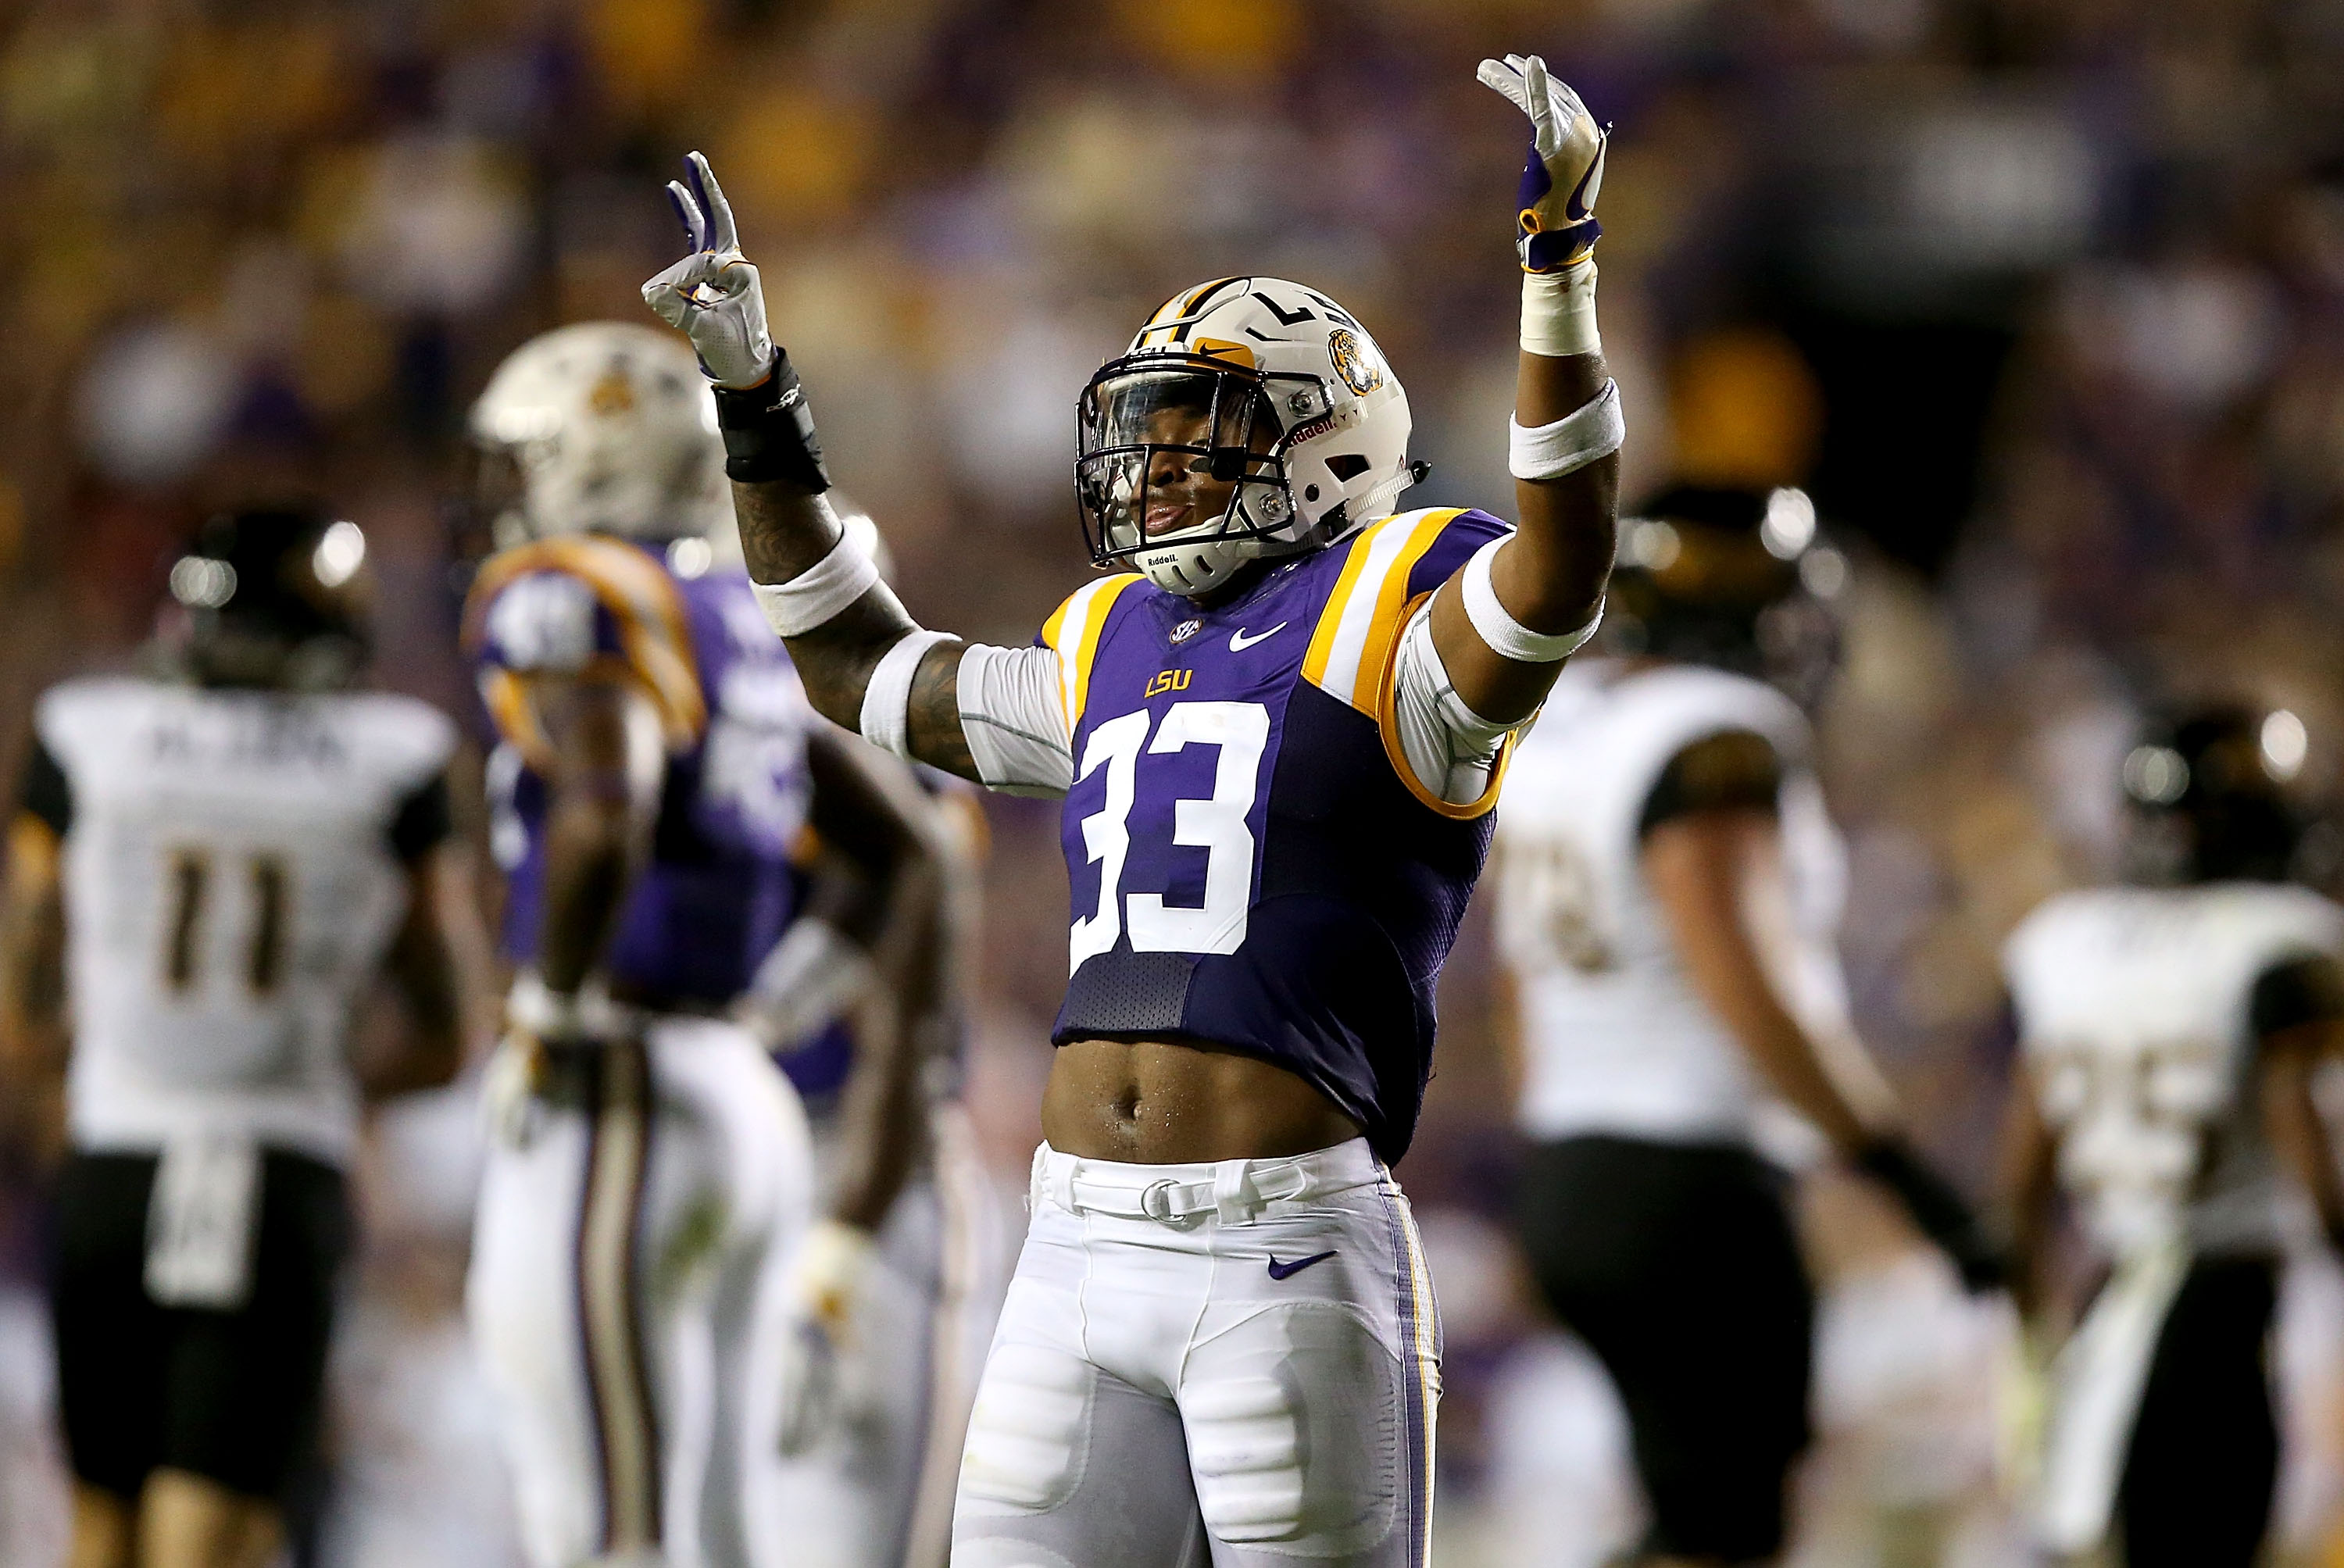 LSU safety Jamal Adams.(Photo by Sean Gardner/Getty Images)